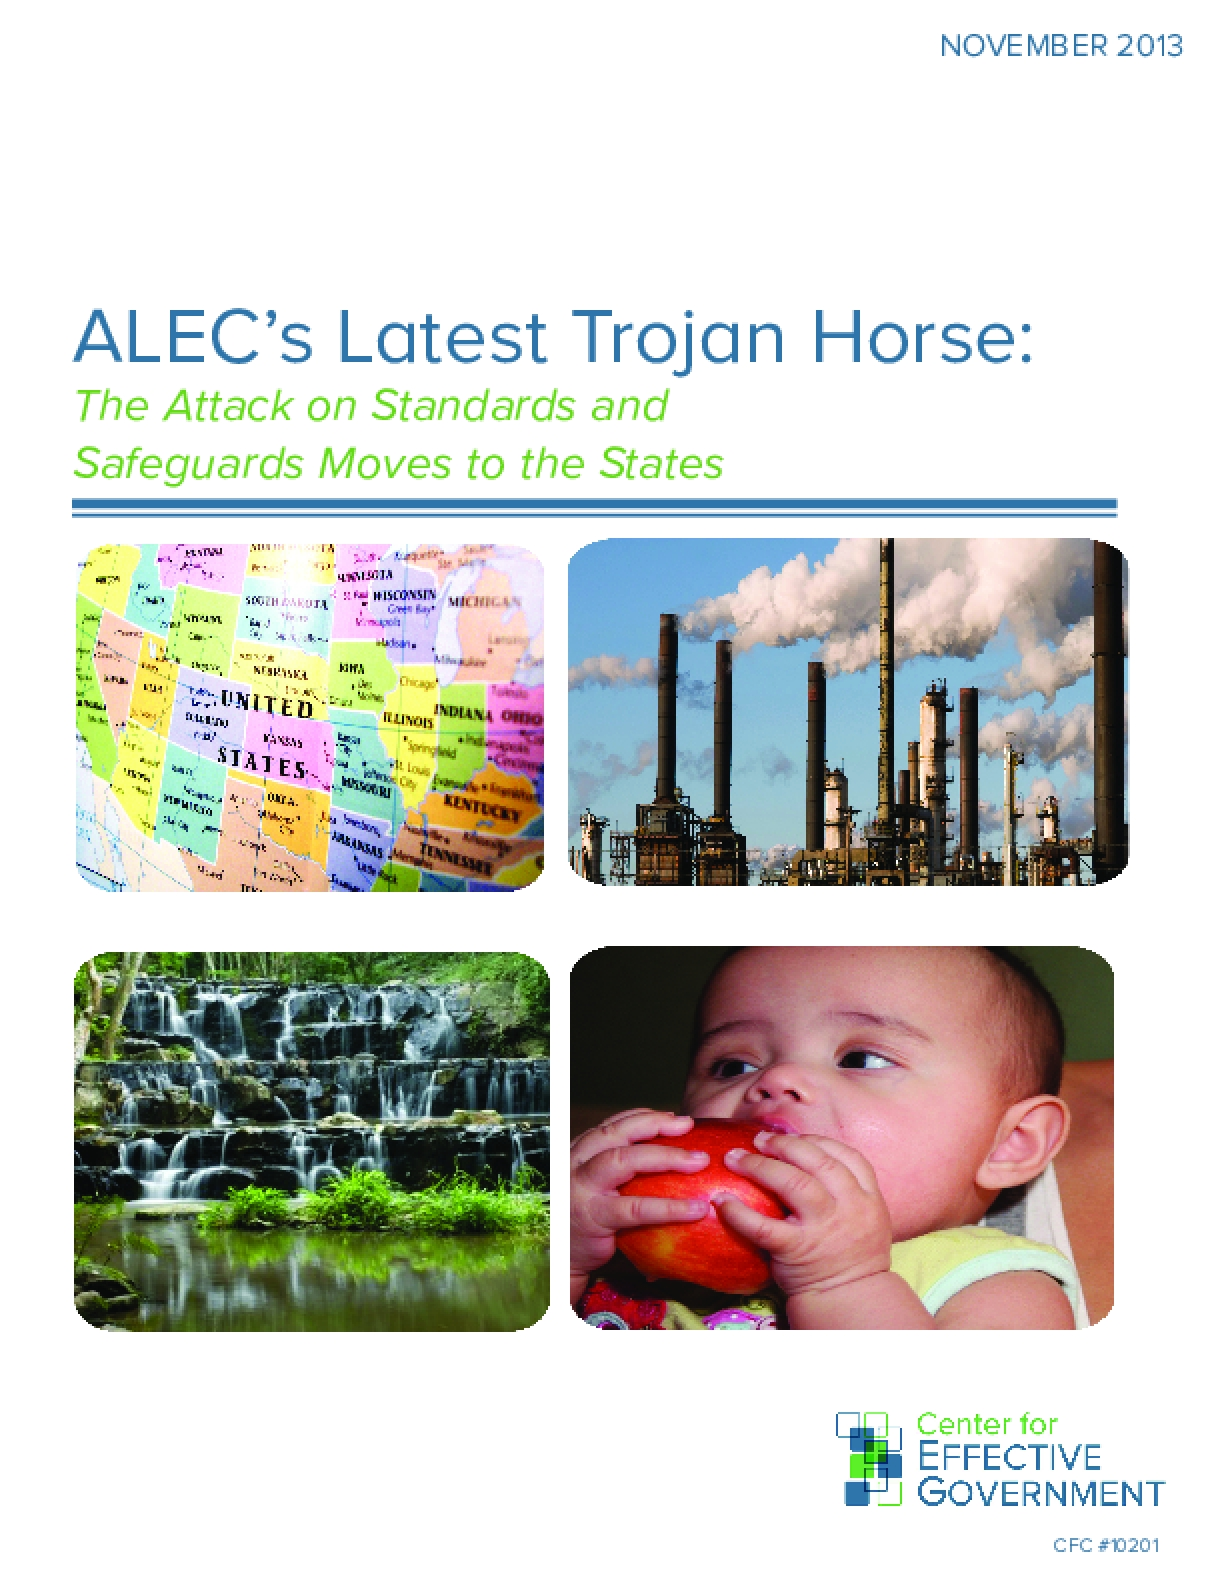 ALEC's Latest Trojan Horse: The Attack on Standards and Safeguards Moves to the States